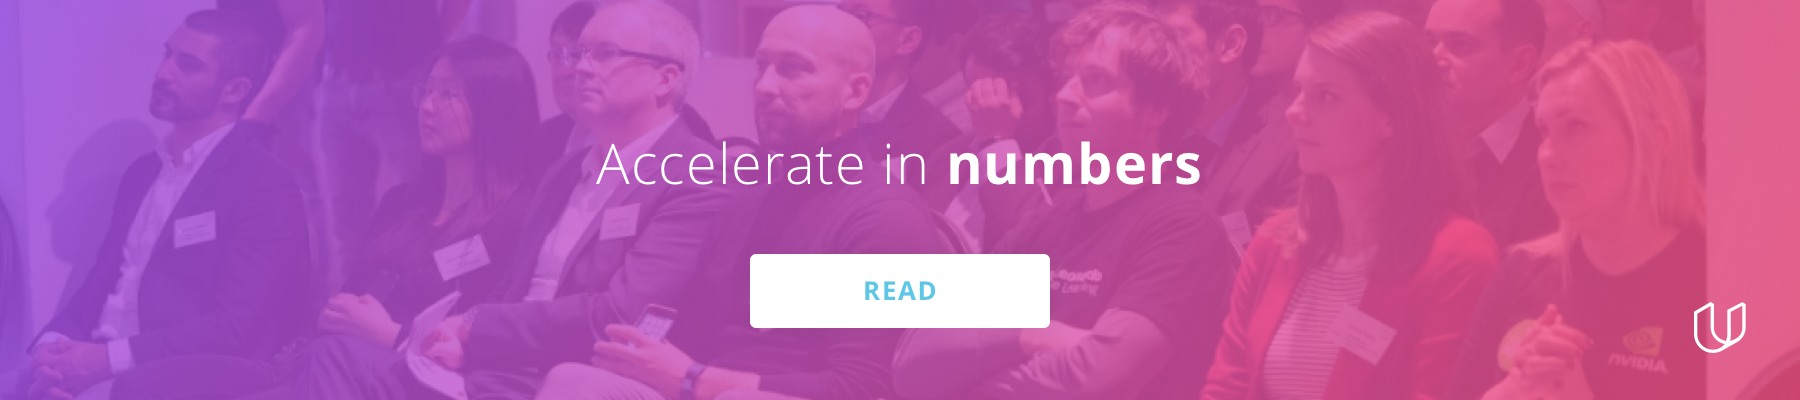 Udacity Recruiting Event Accelerate in Europe, the event in numbers